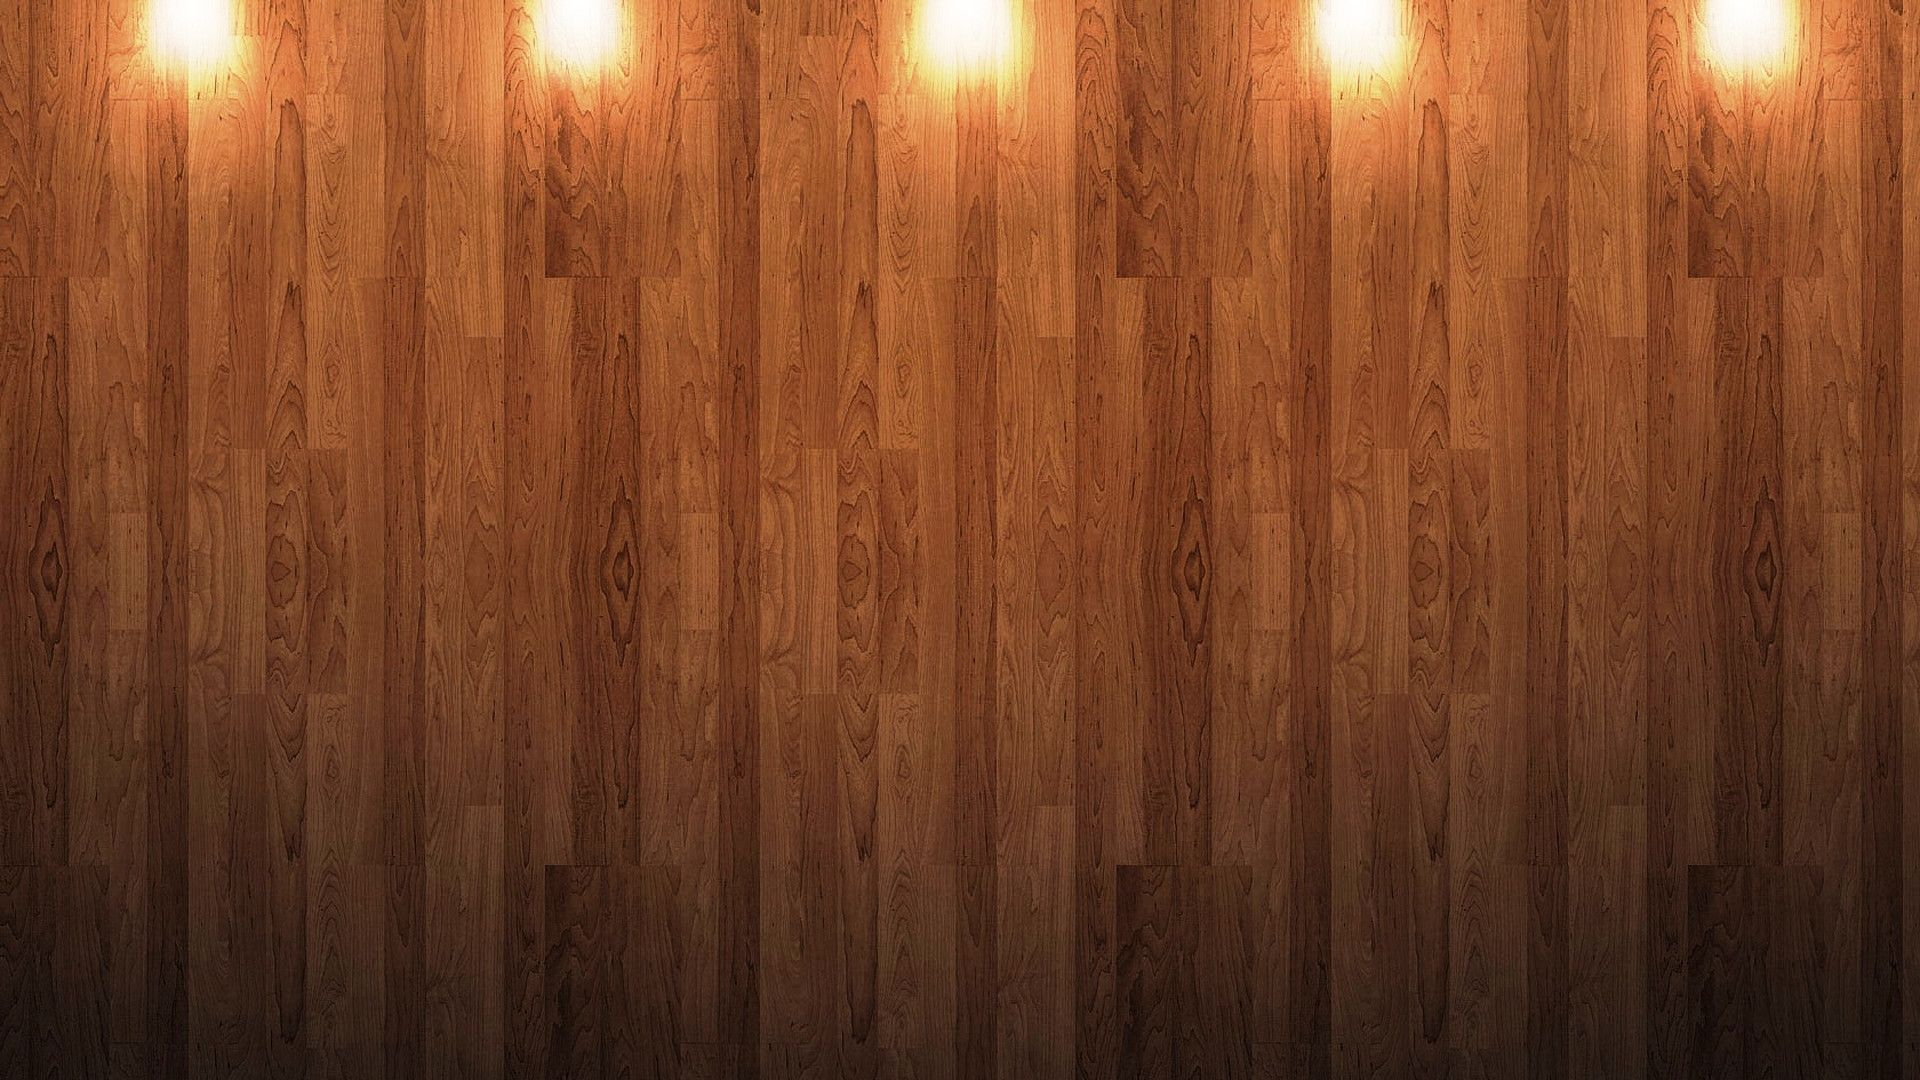 HD Wood Backgrounds Group (60+)